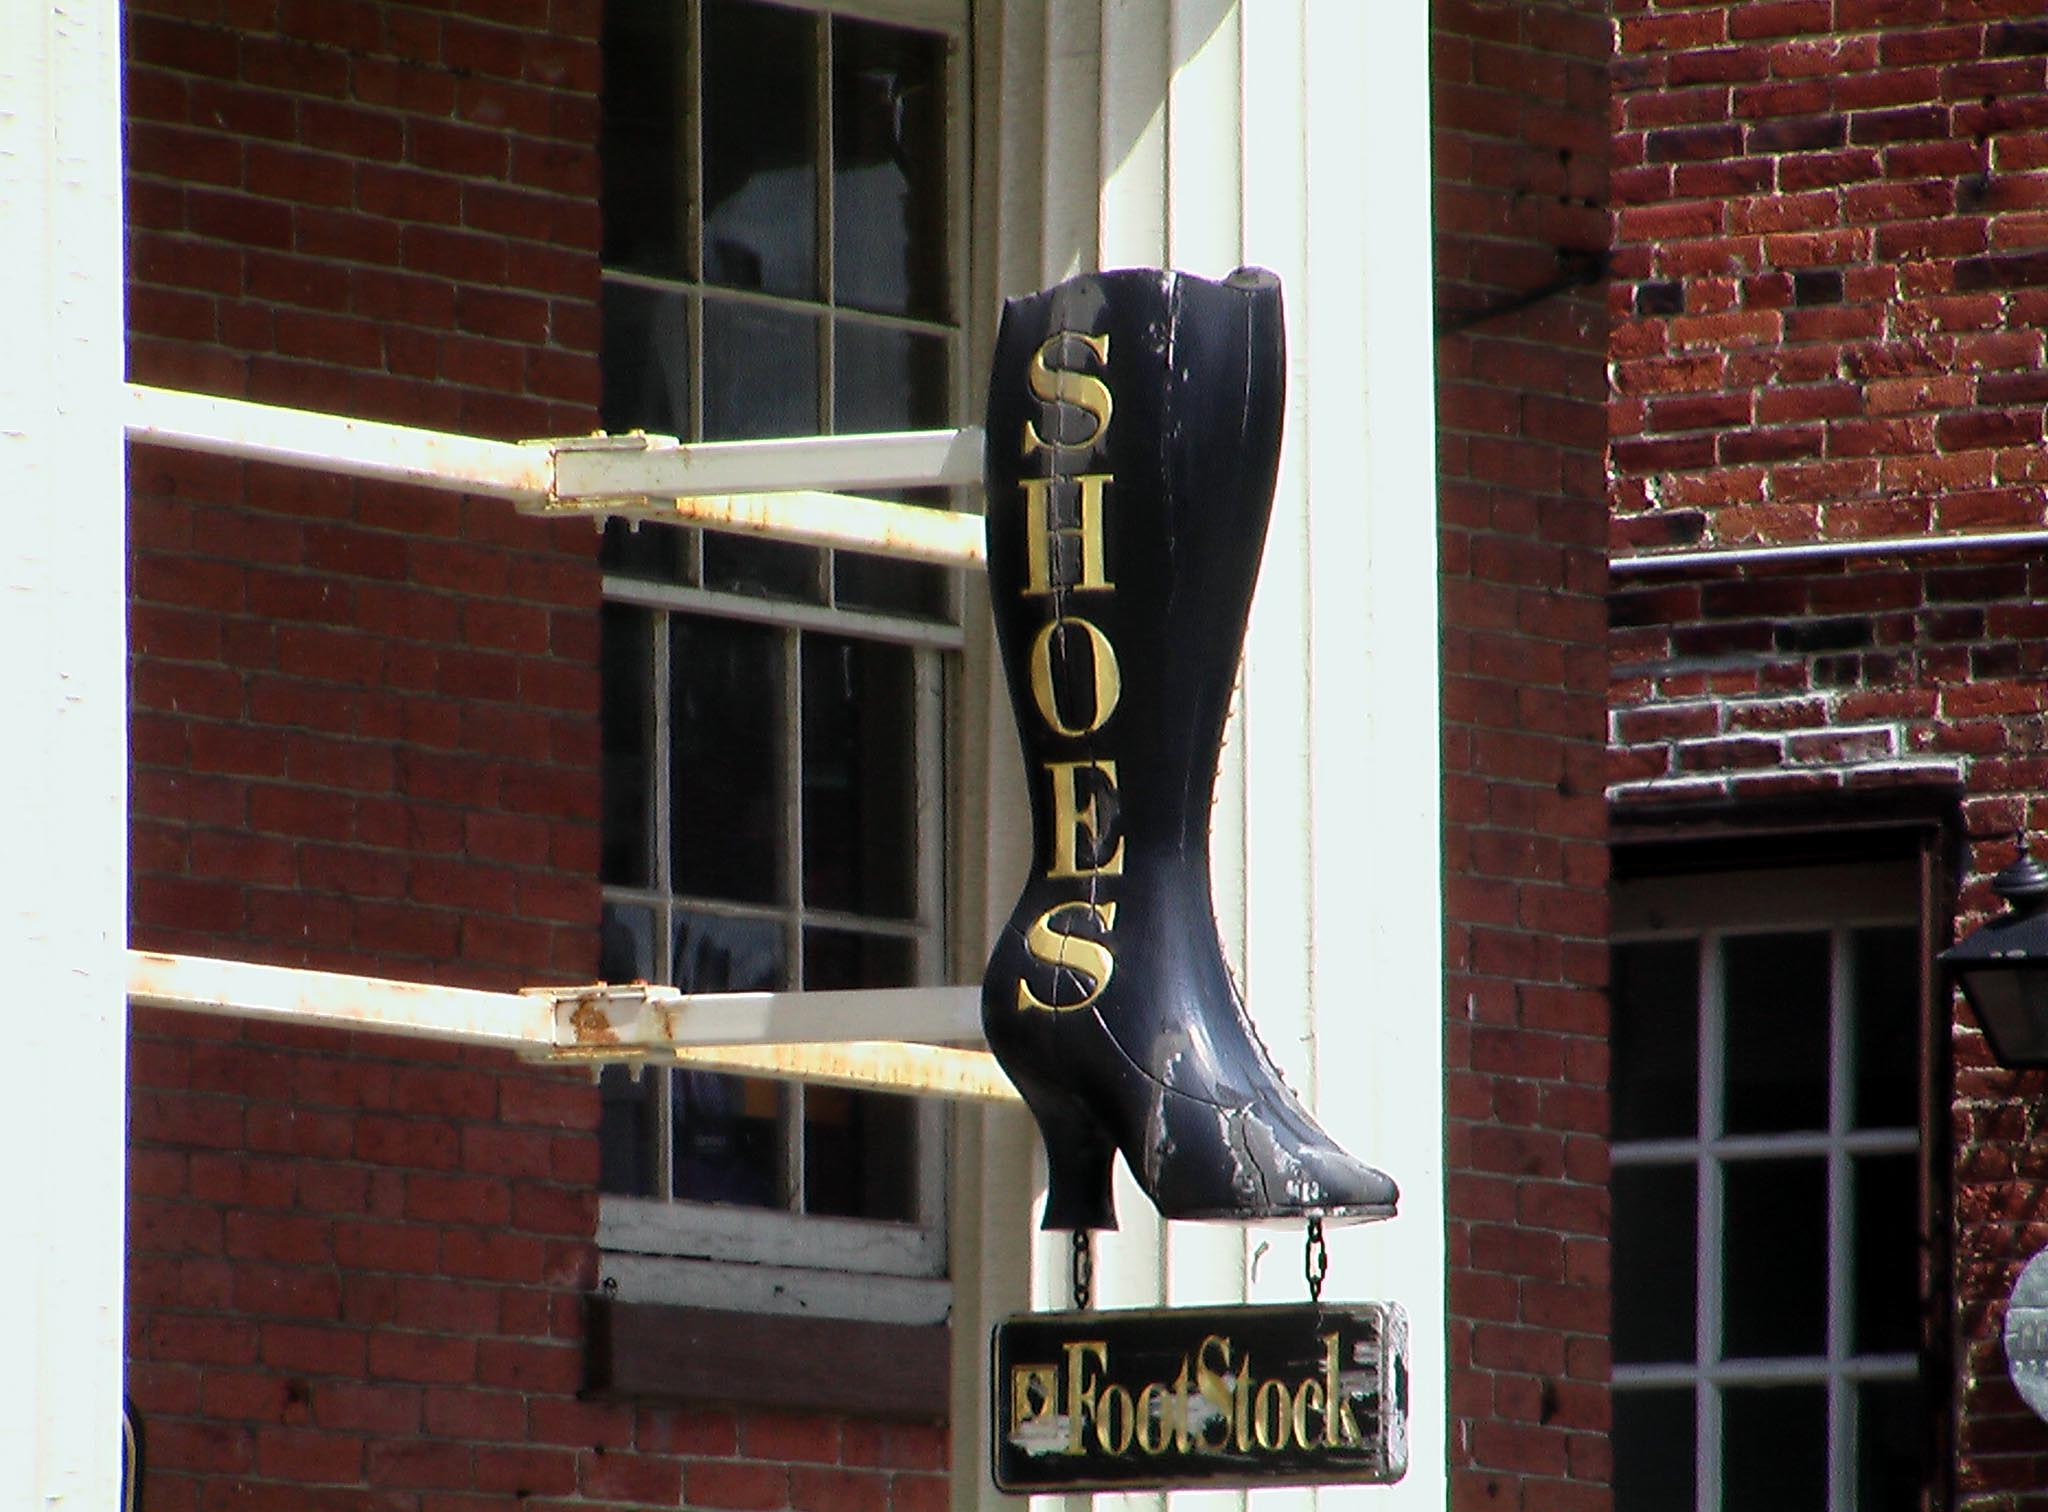 MA Concord - FootStock sign.jpg